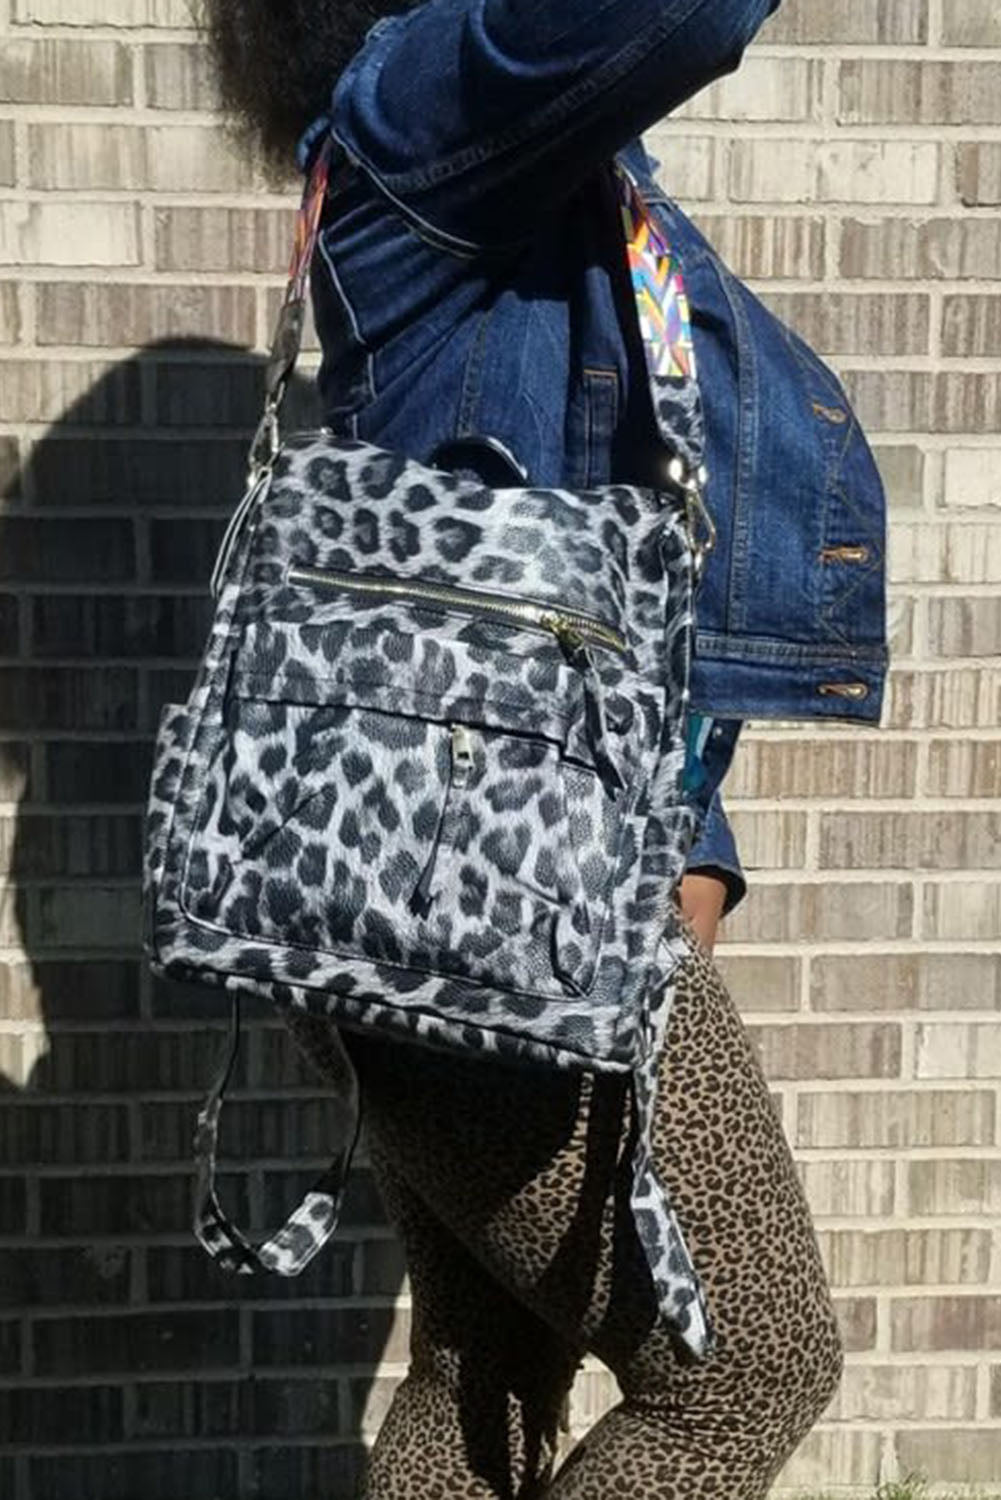 Gray Leopard Travel Backpack Bags Discount Designer Fashion Clothes Shoes Bags Women Men Kids Children Black Owned Business